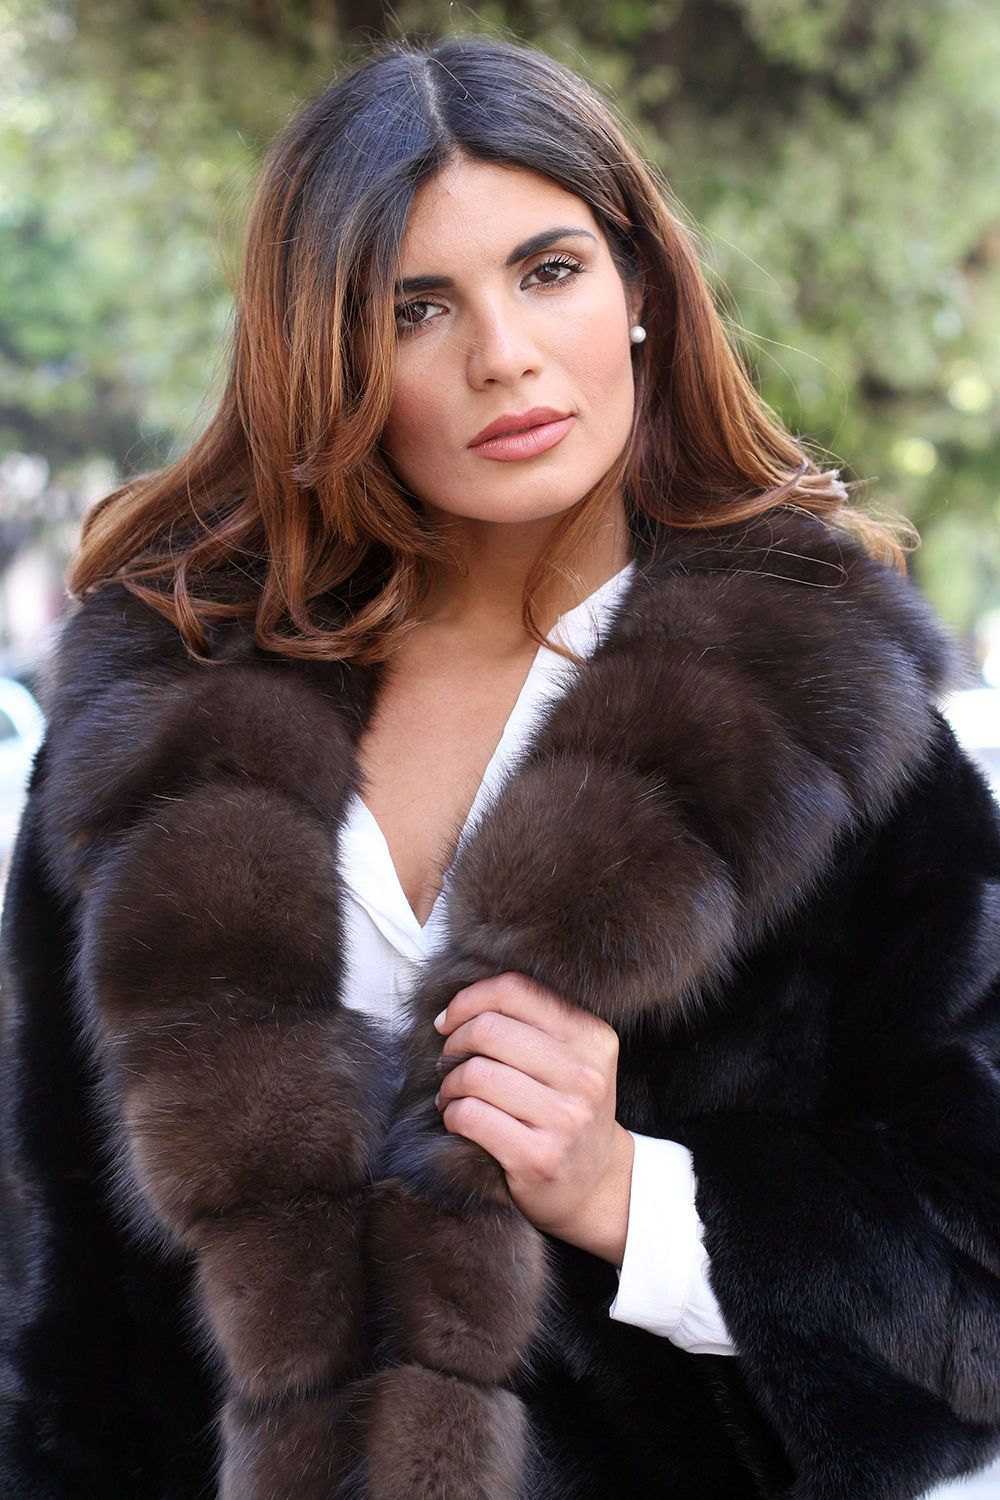 Pelz Pelzmantel Mantel Nerz Fur Coat Sable Zobel Mink ...